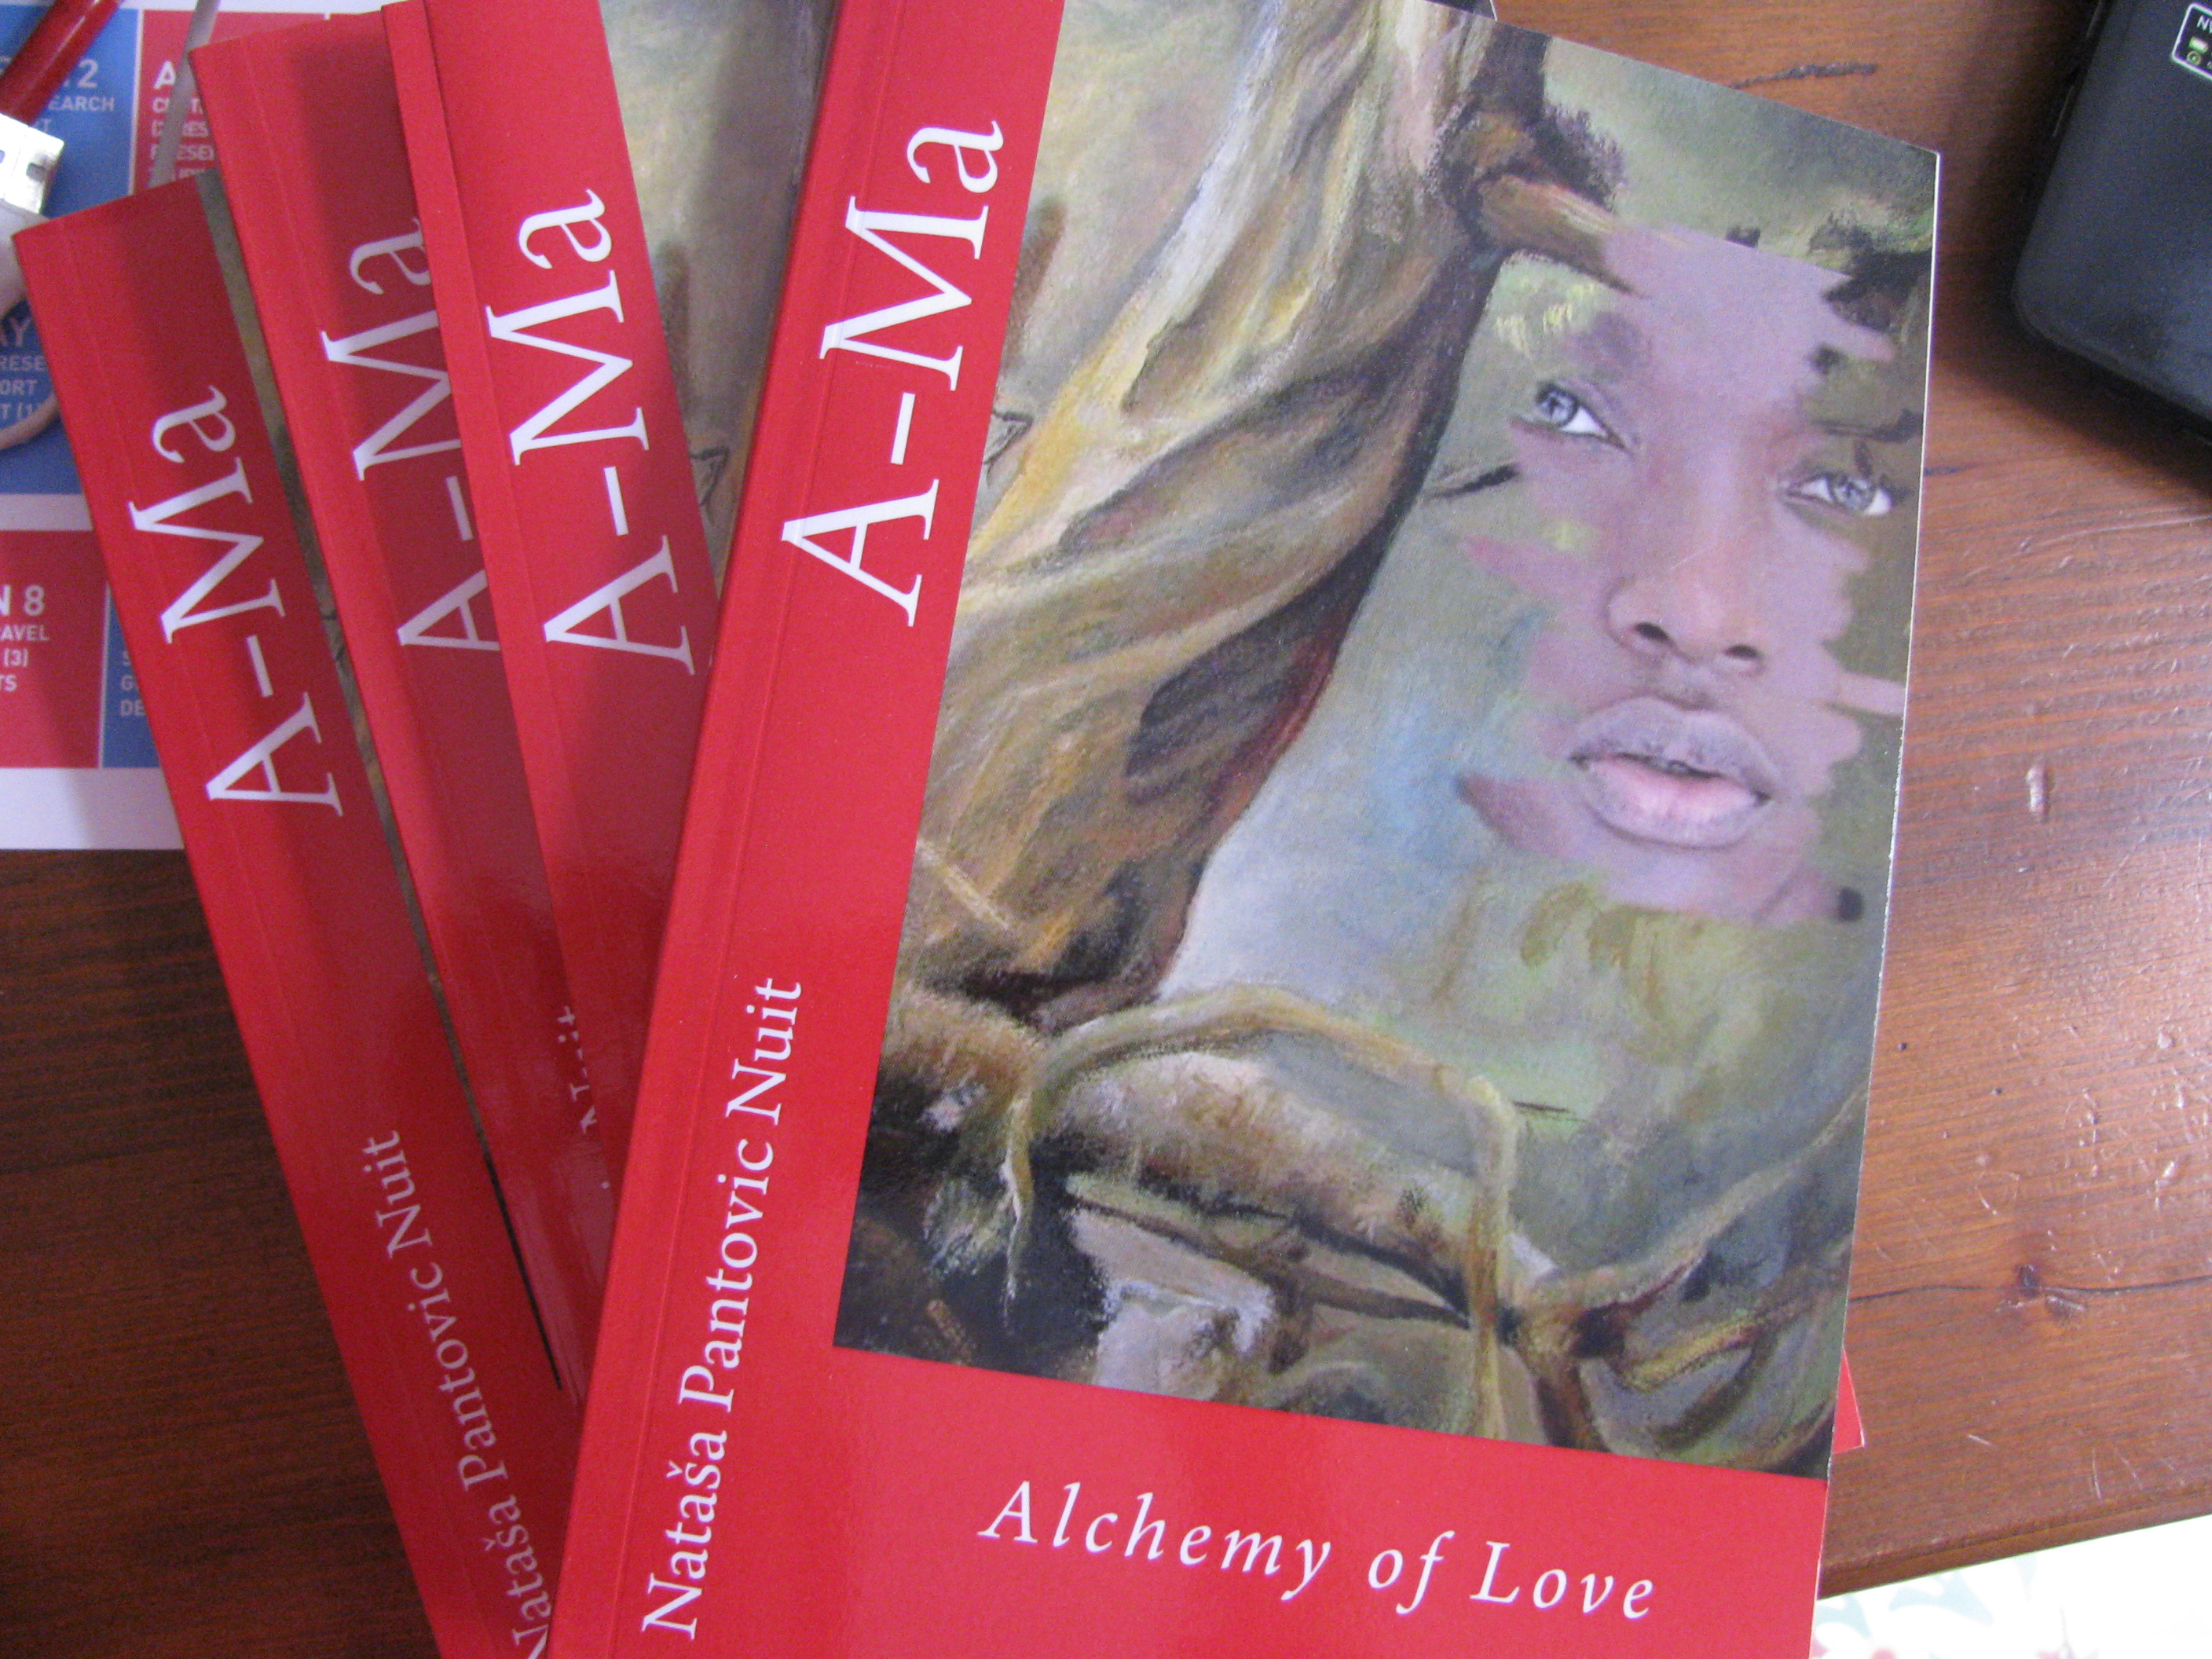 A-Ma Alchemy of Love Historical Spiritual Fiction set in Ancient China by Natasa Pantovic Nuit